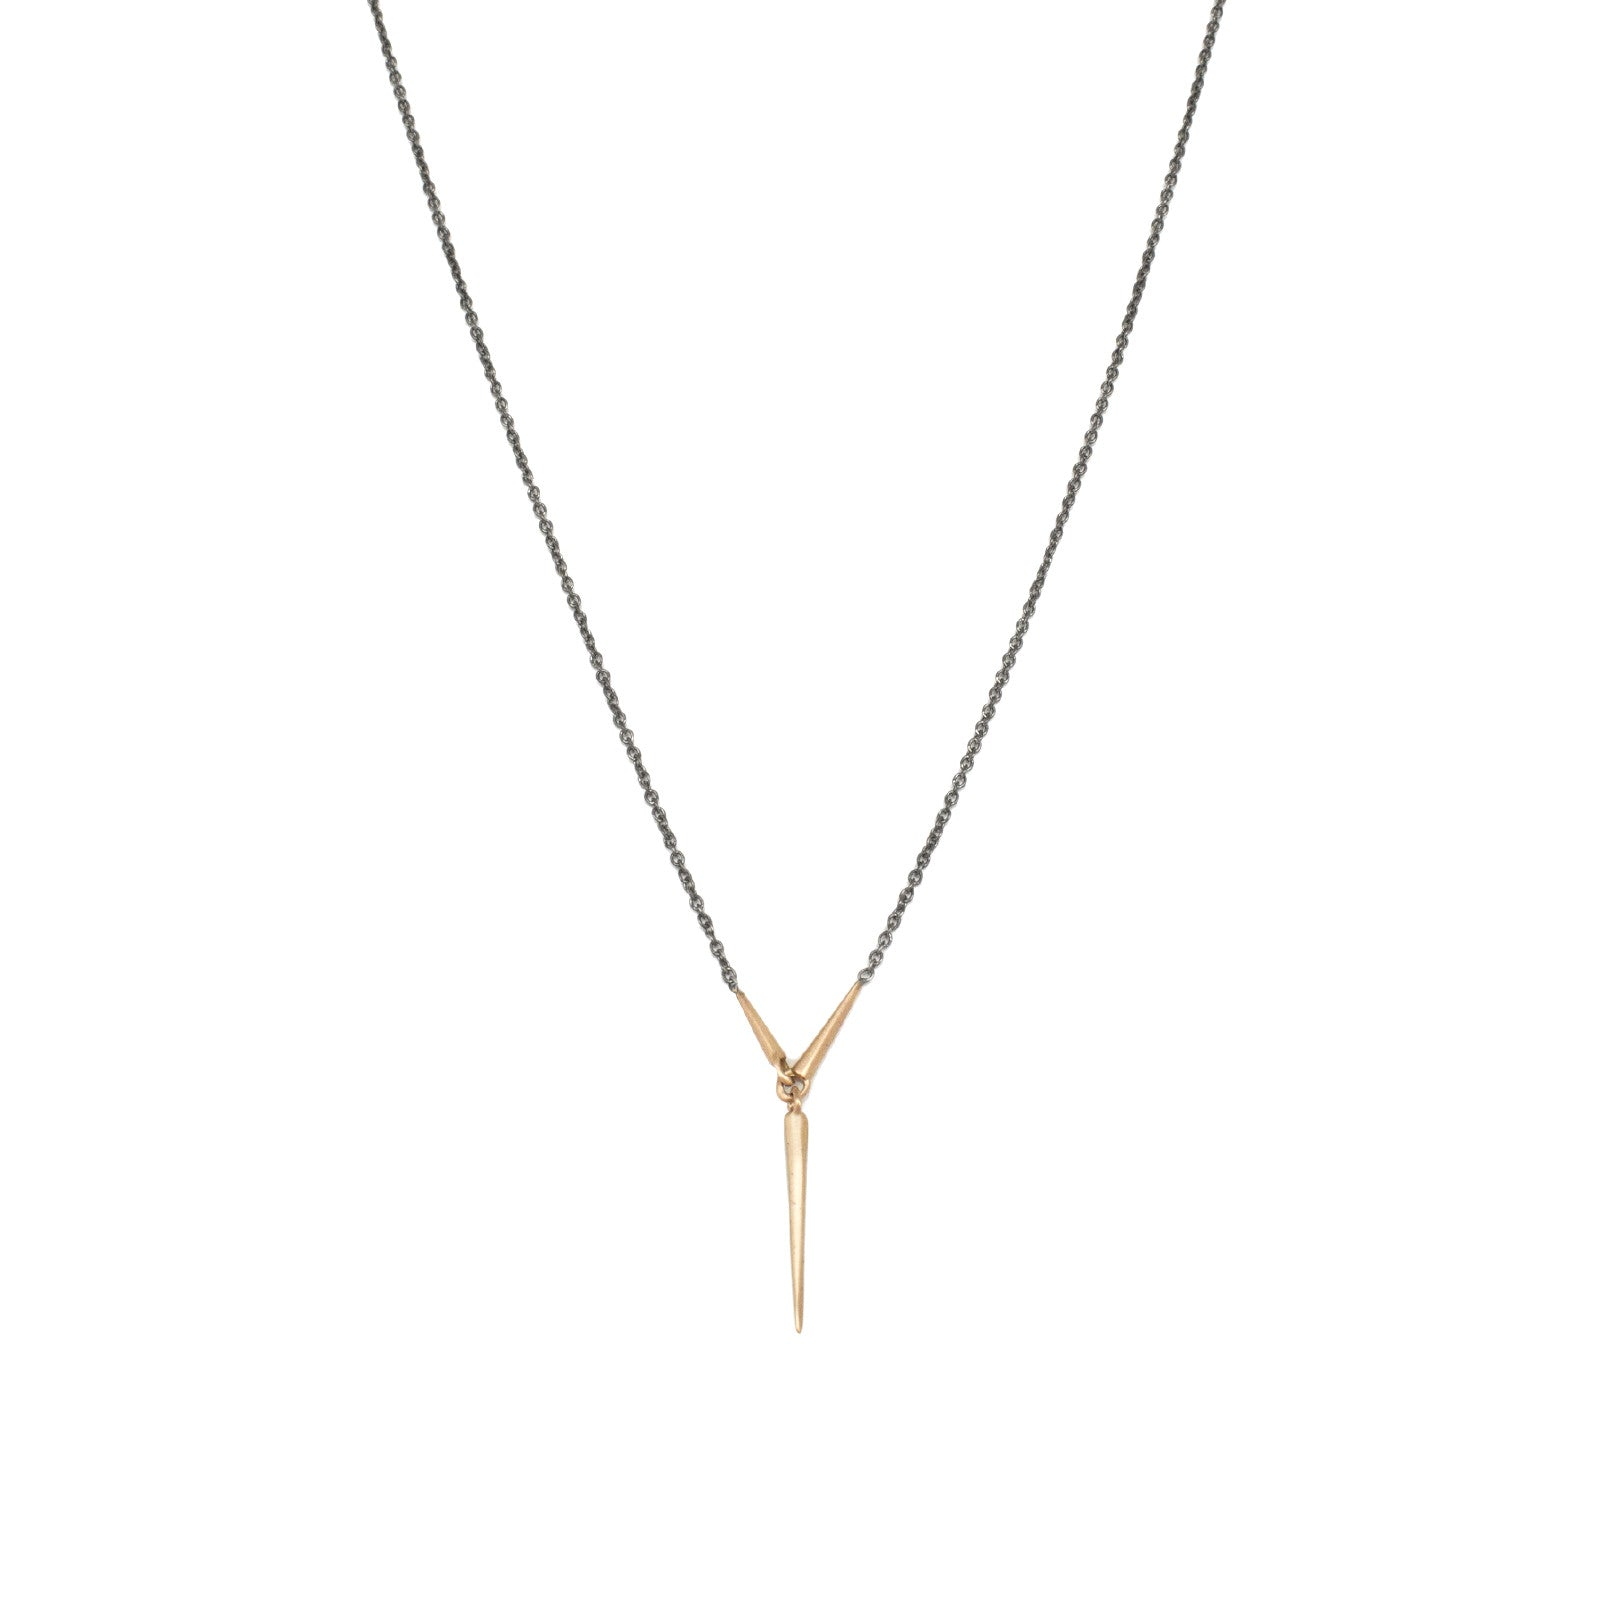 18k rose gold/oxidized silver chain / long triad necklace